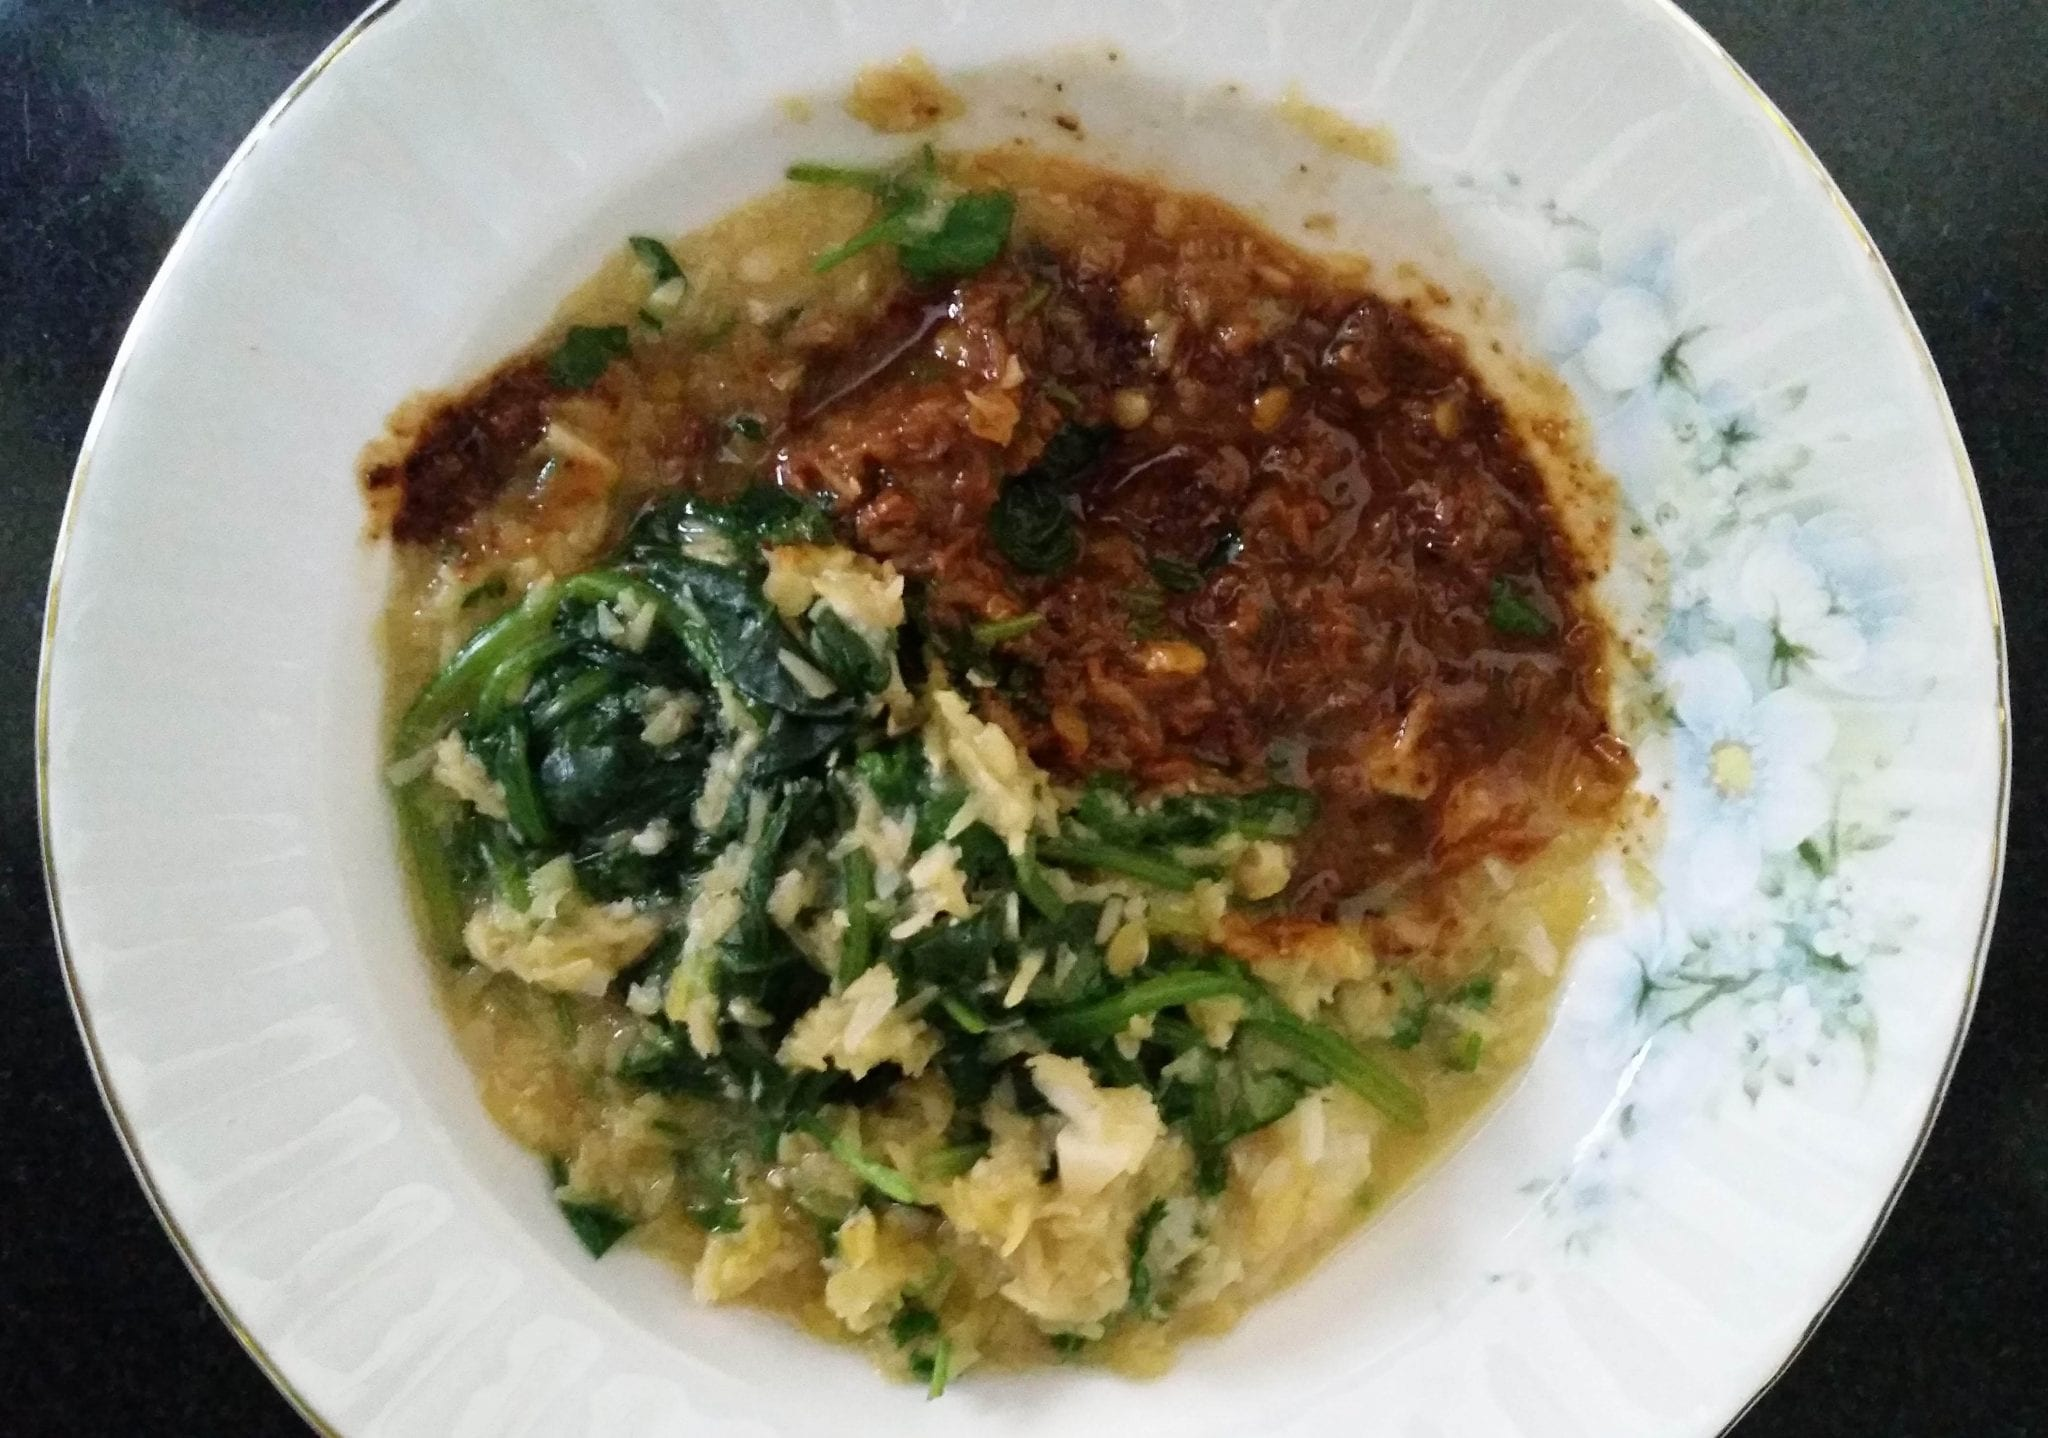 dish of rice, greens and lentils